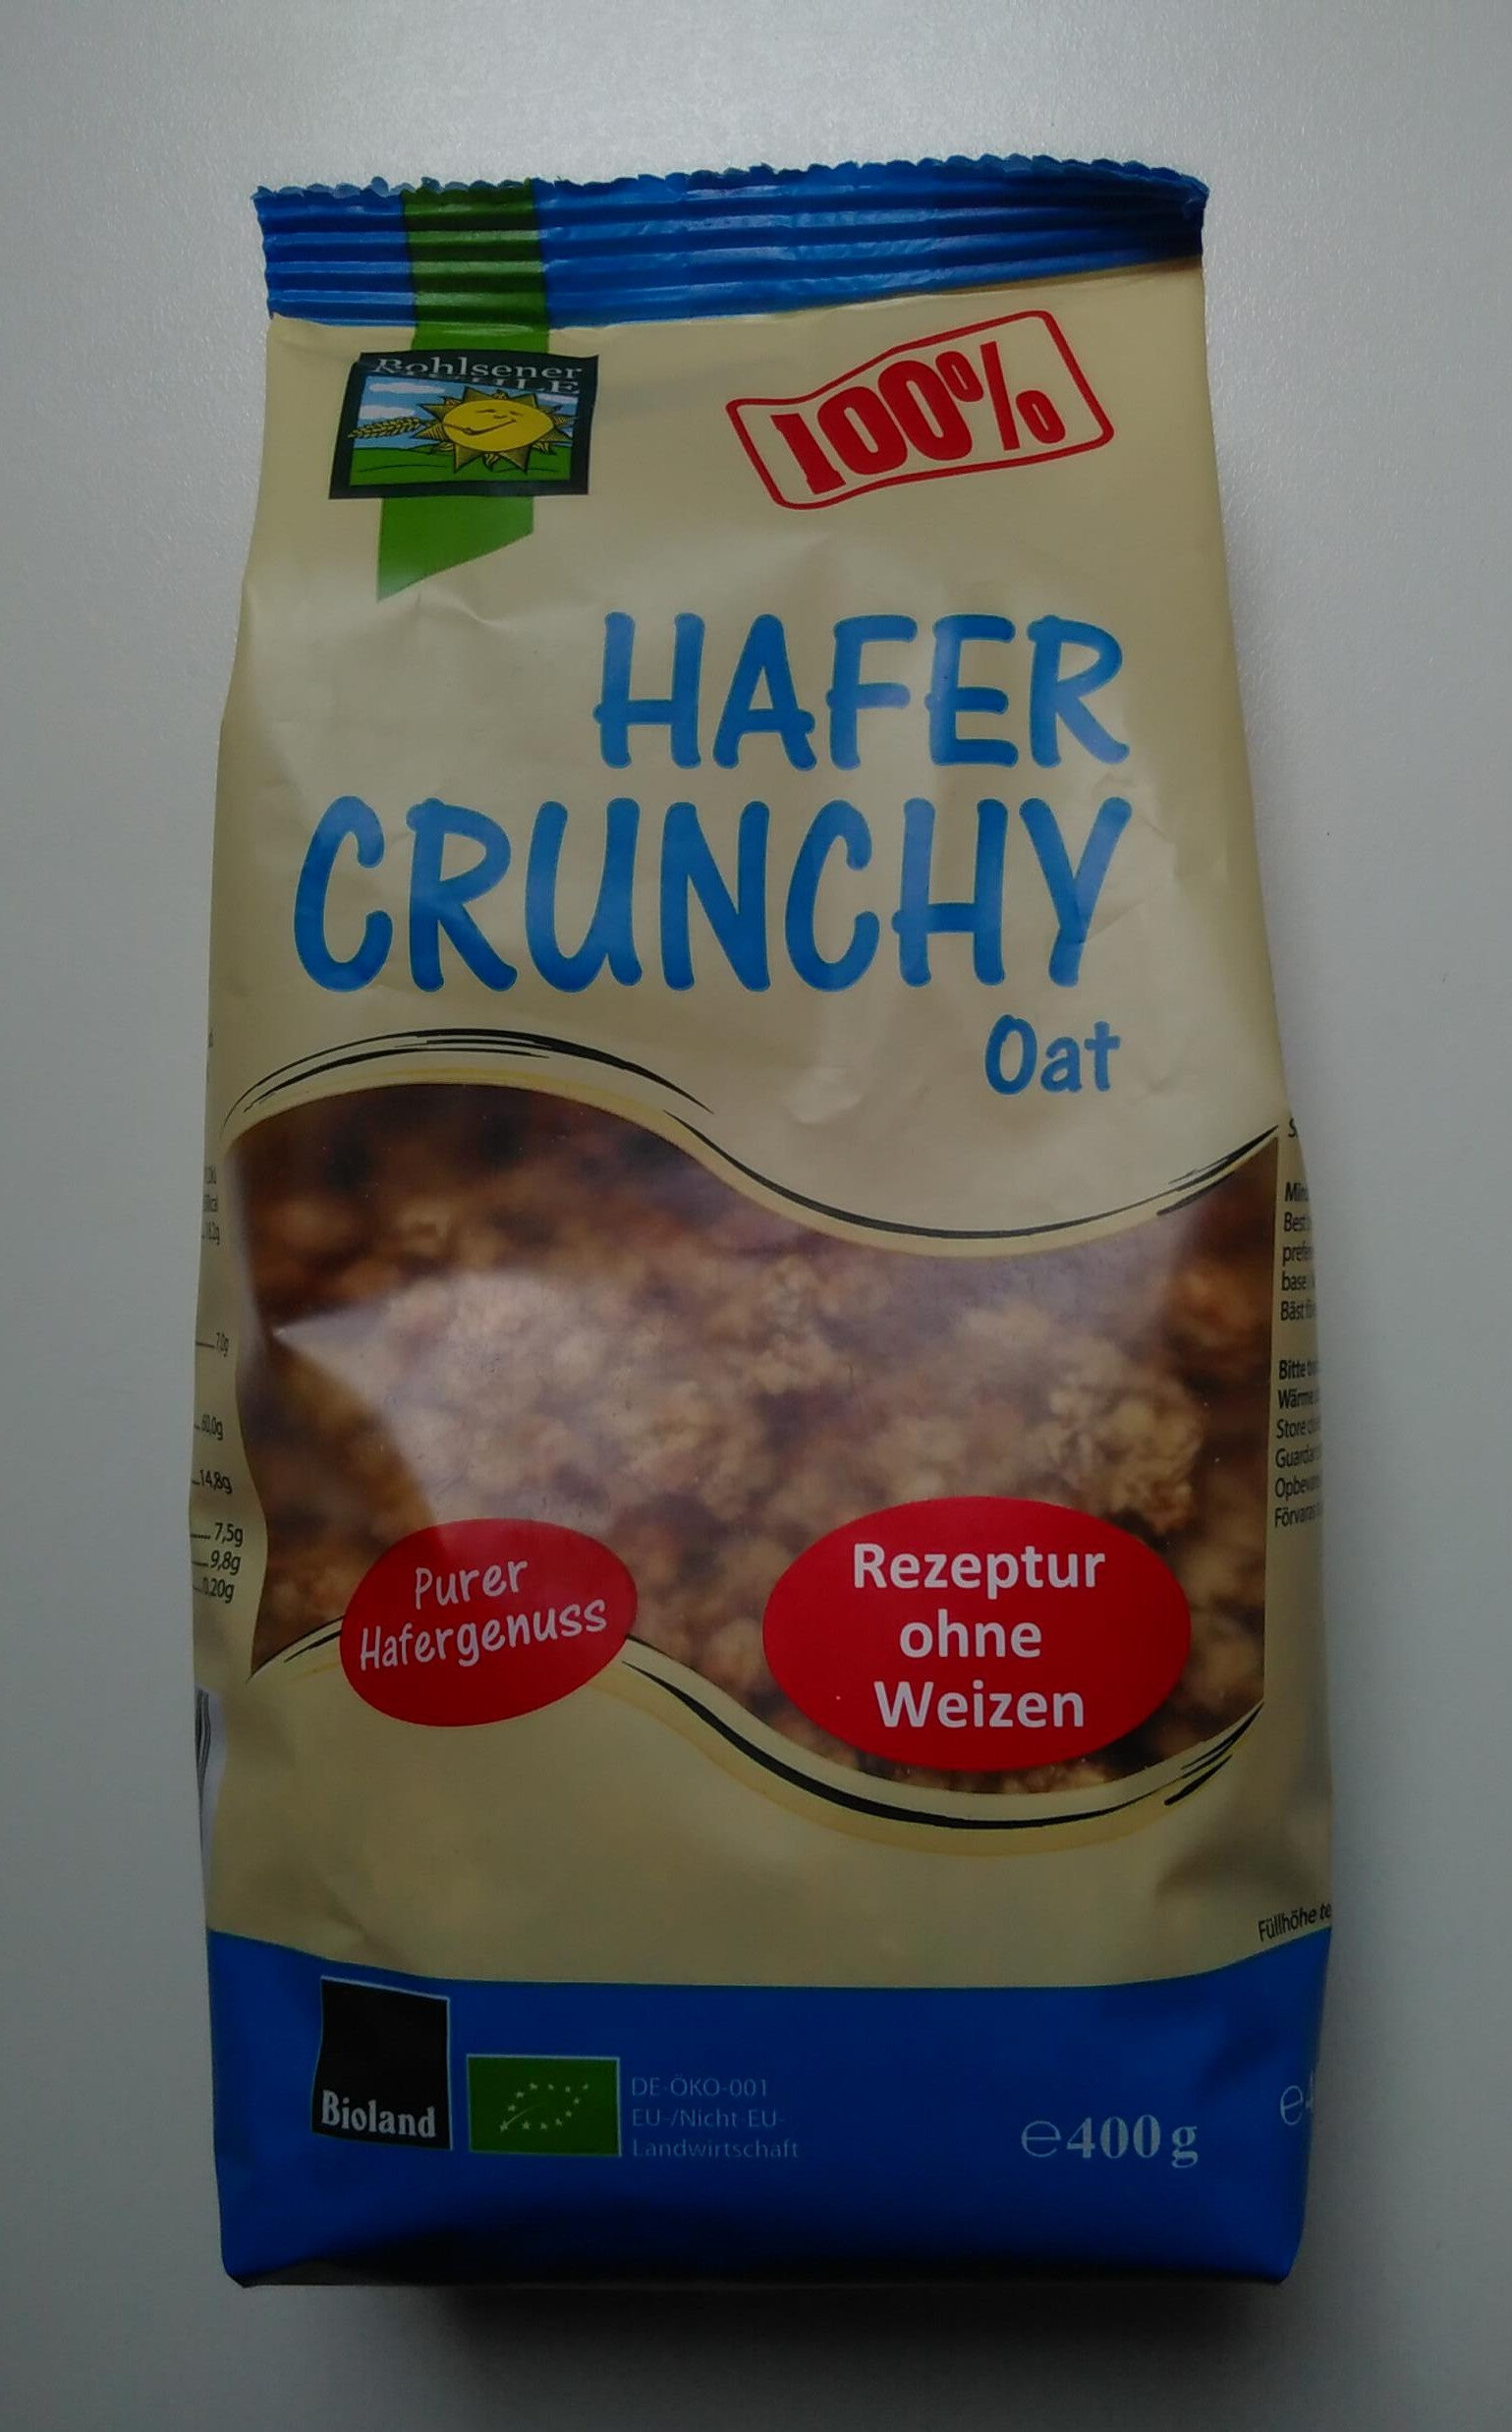 Hafer Crunchy Oat - Product